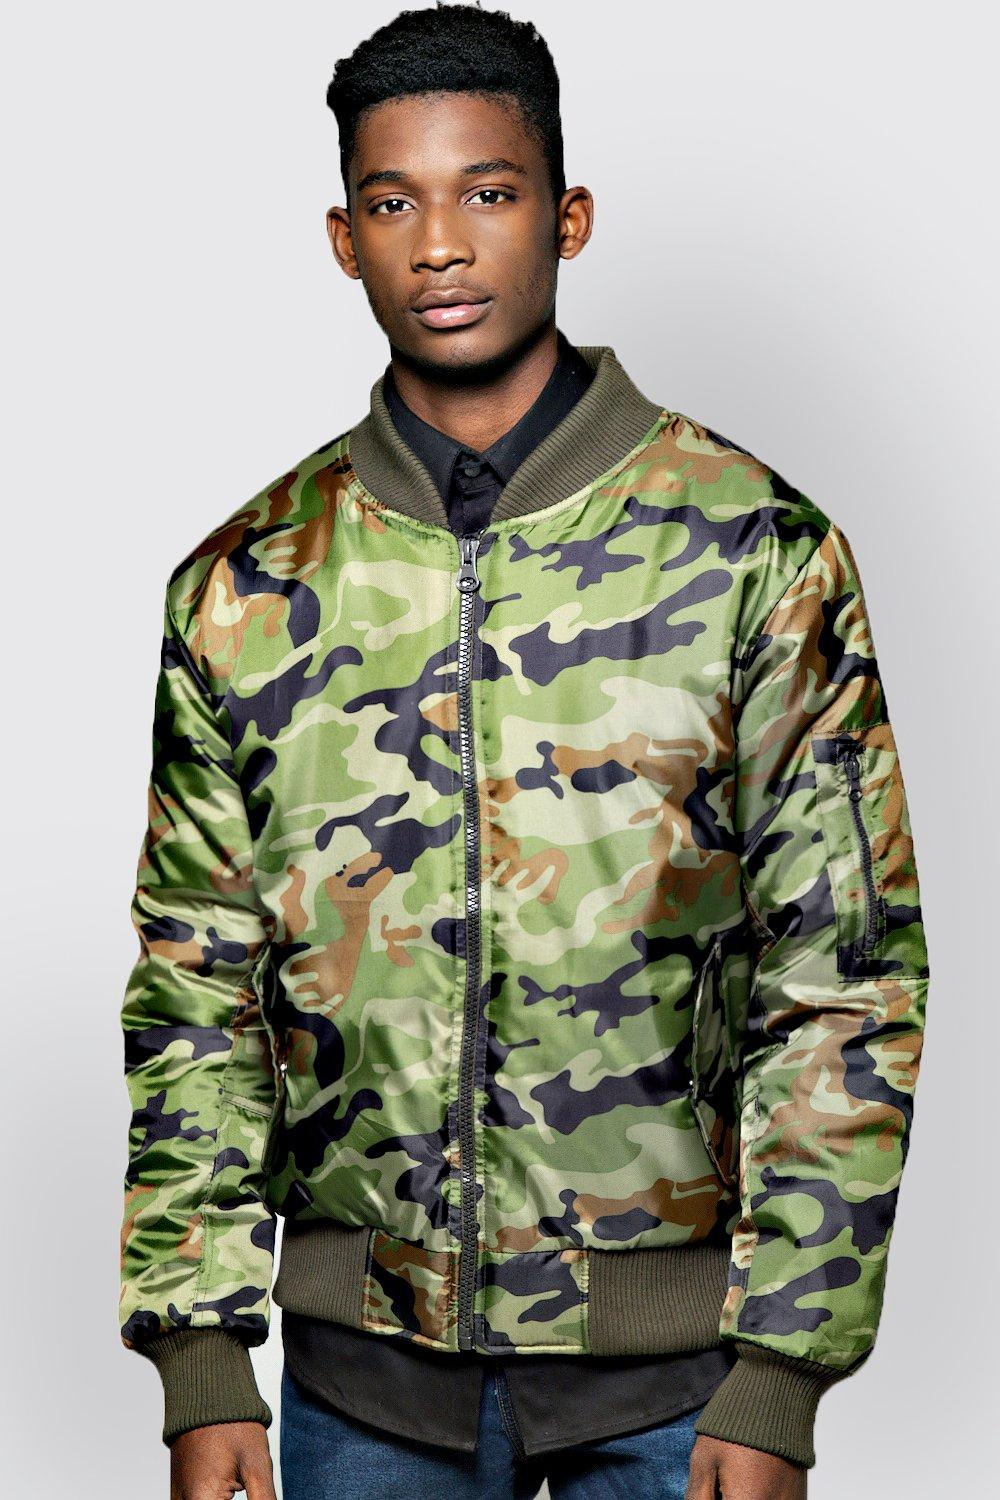 Hunting clothing and camouflage for the hunting enthusiast. Shop at Sportsman's for great prices on camo, tshirts, coats, pants, jackets and more - Sportsman's Warehouse - Sportsman's Warehouse.